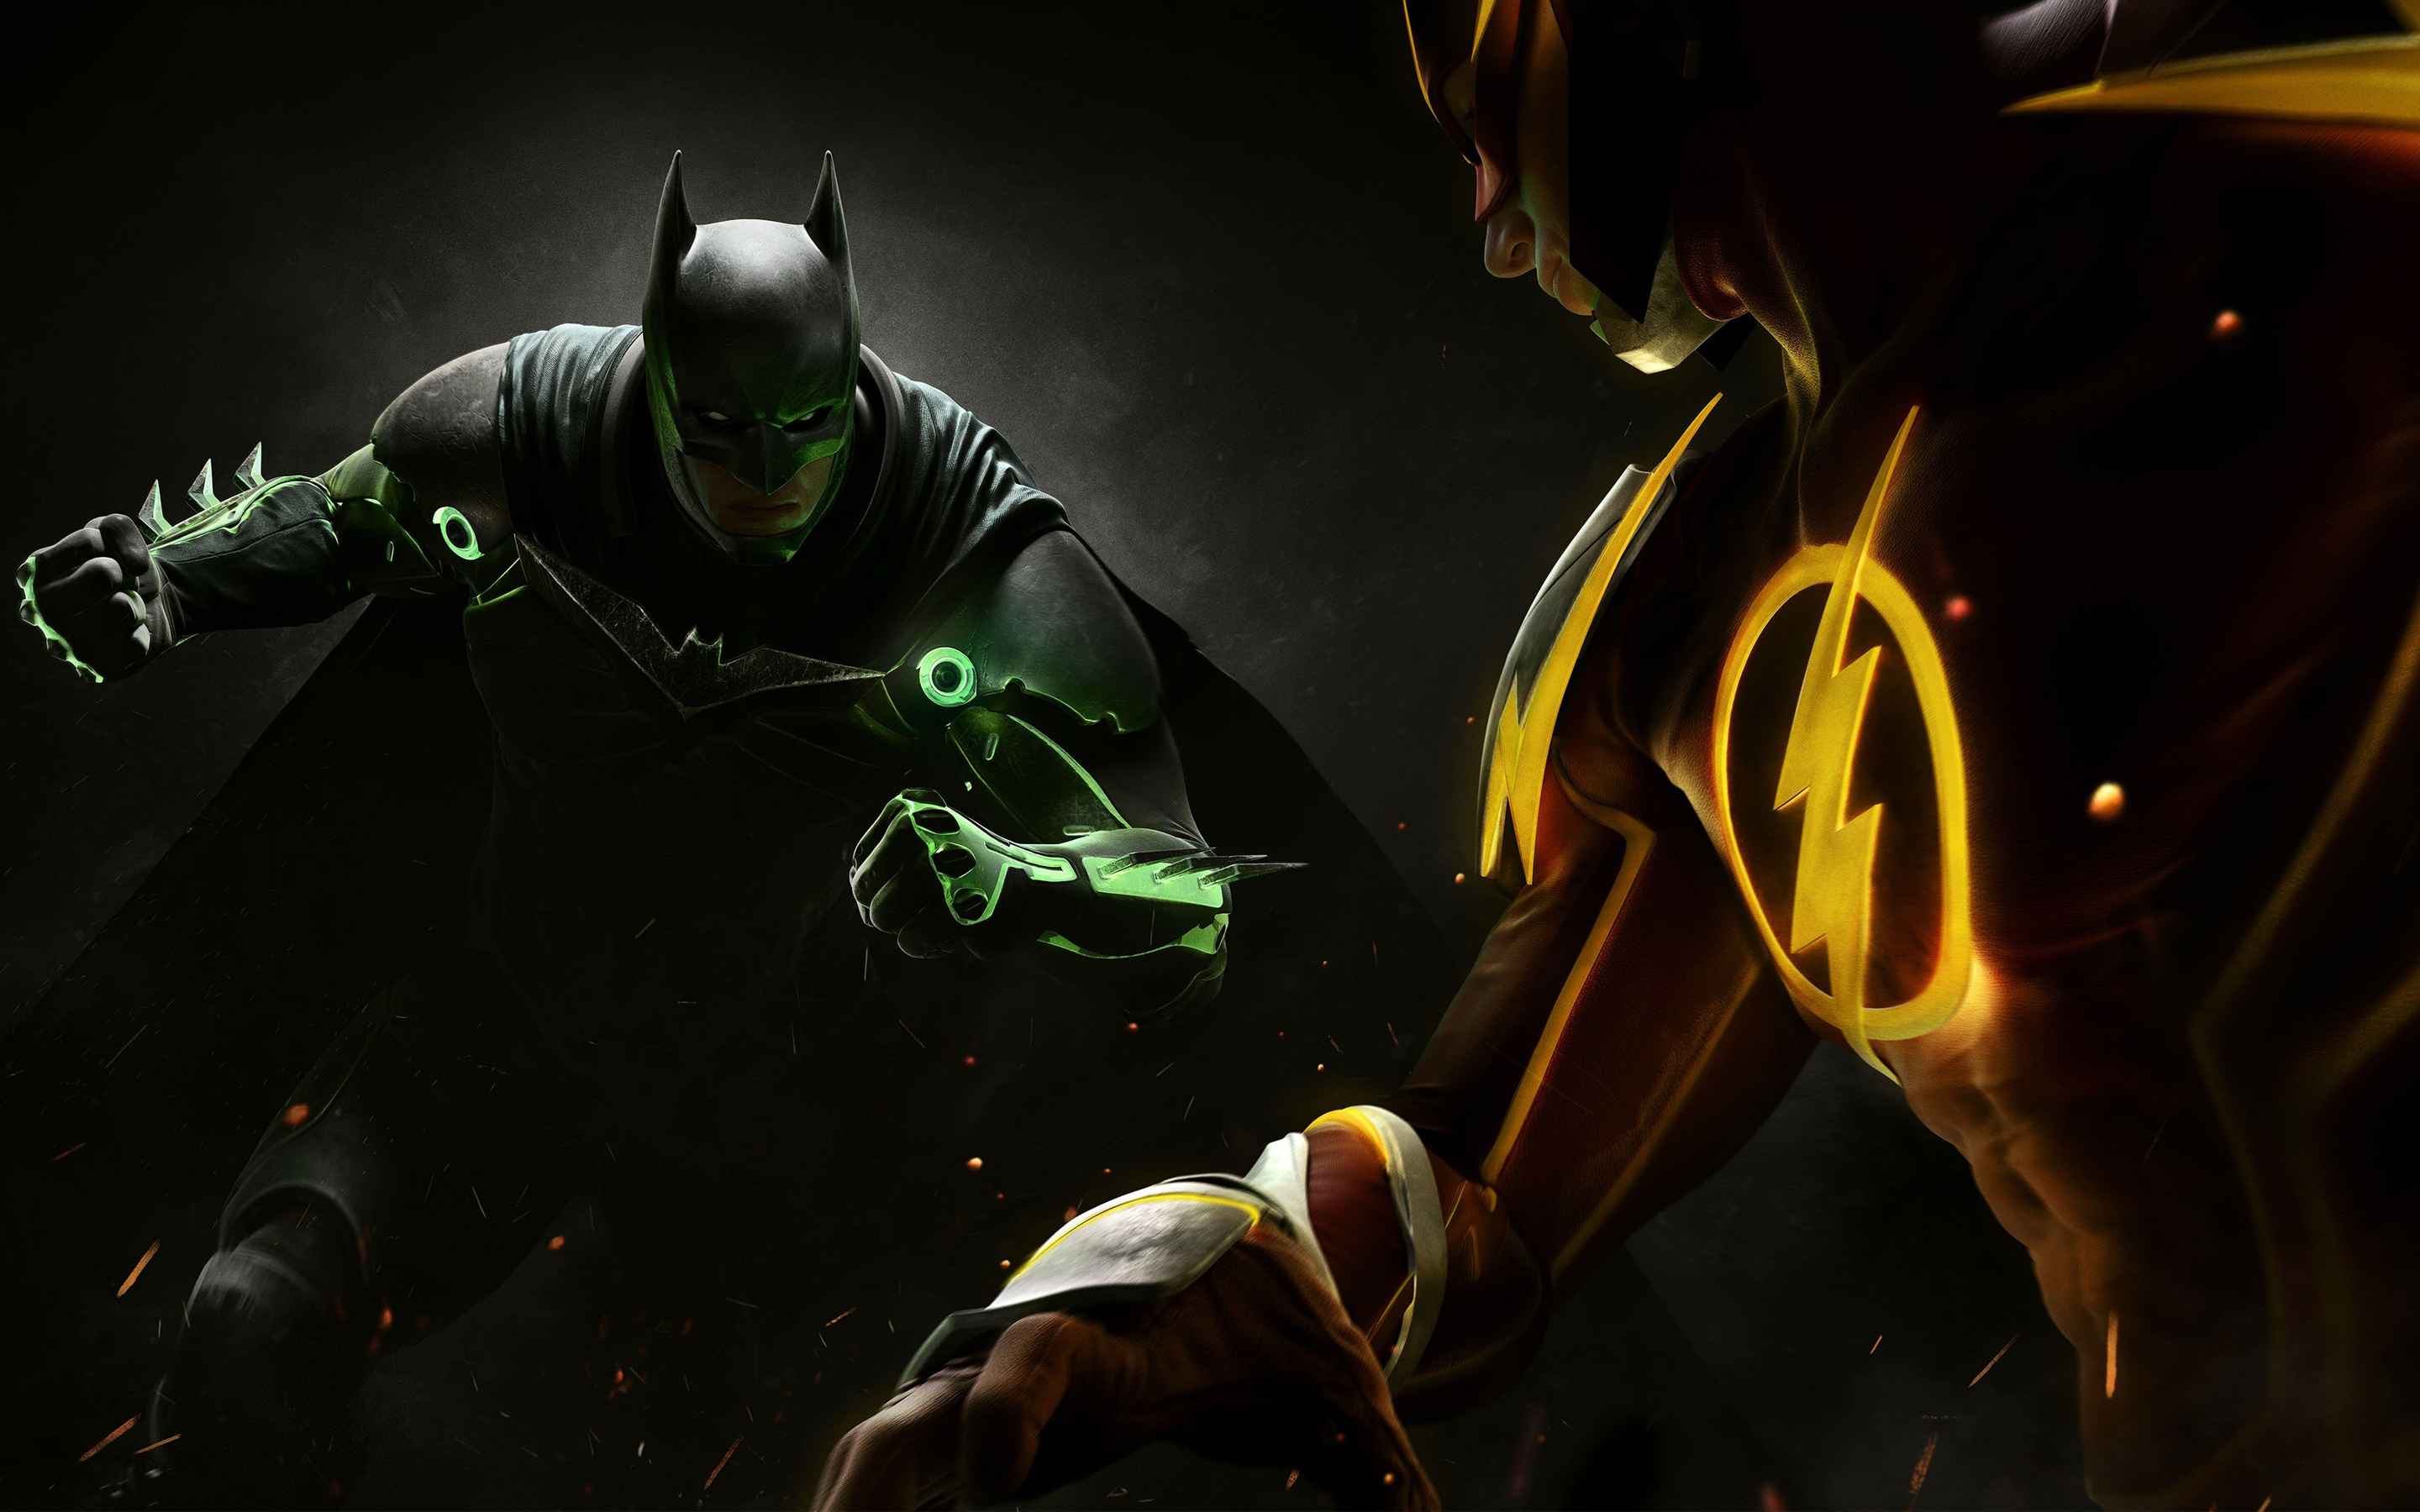 While San Diego Comic Con was overwhelmed by DC announcements for their films, television shows and comics, room 6DE also revealed more details for the upcoming new game and sequel to Injustice: Gods Among Us.